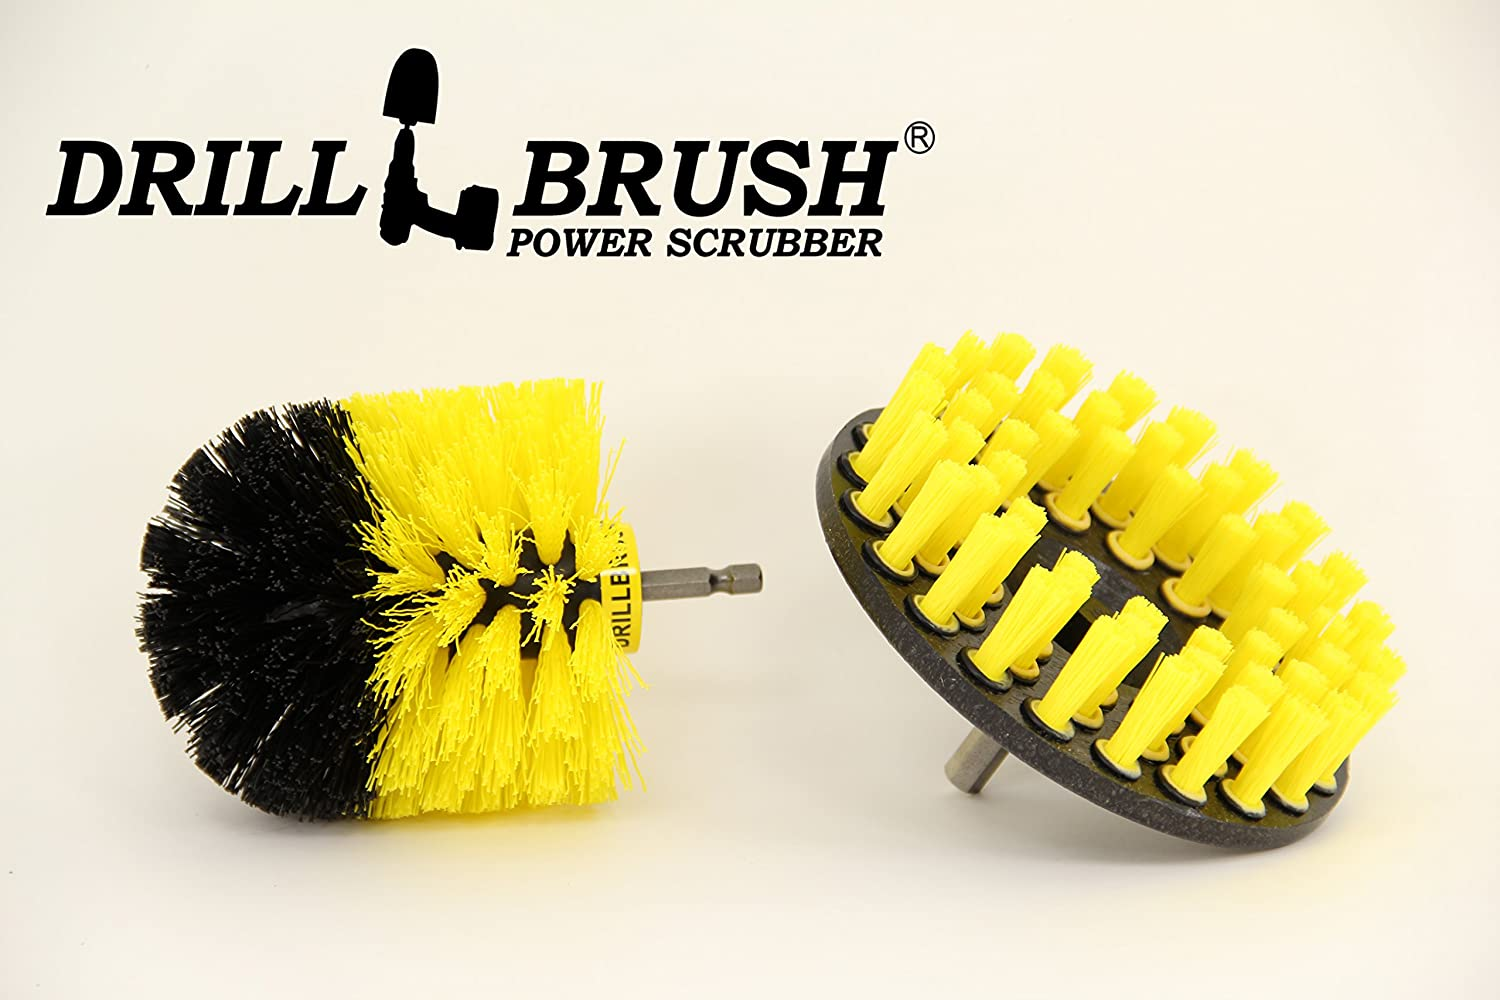 Power Scrubber